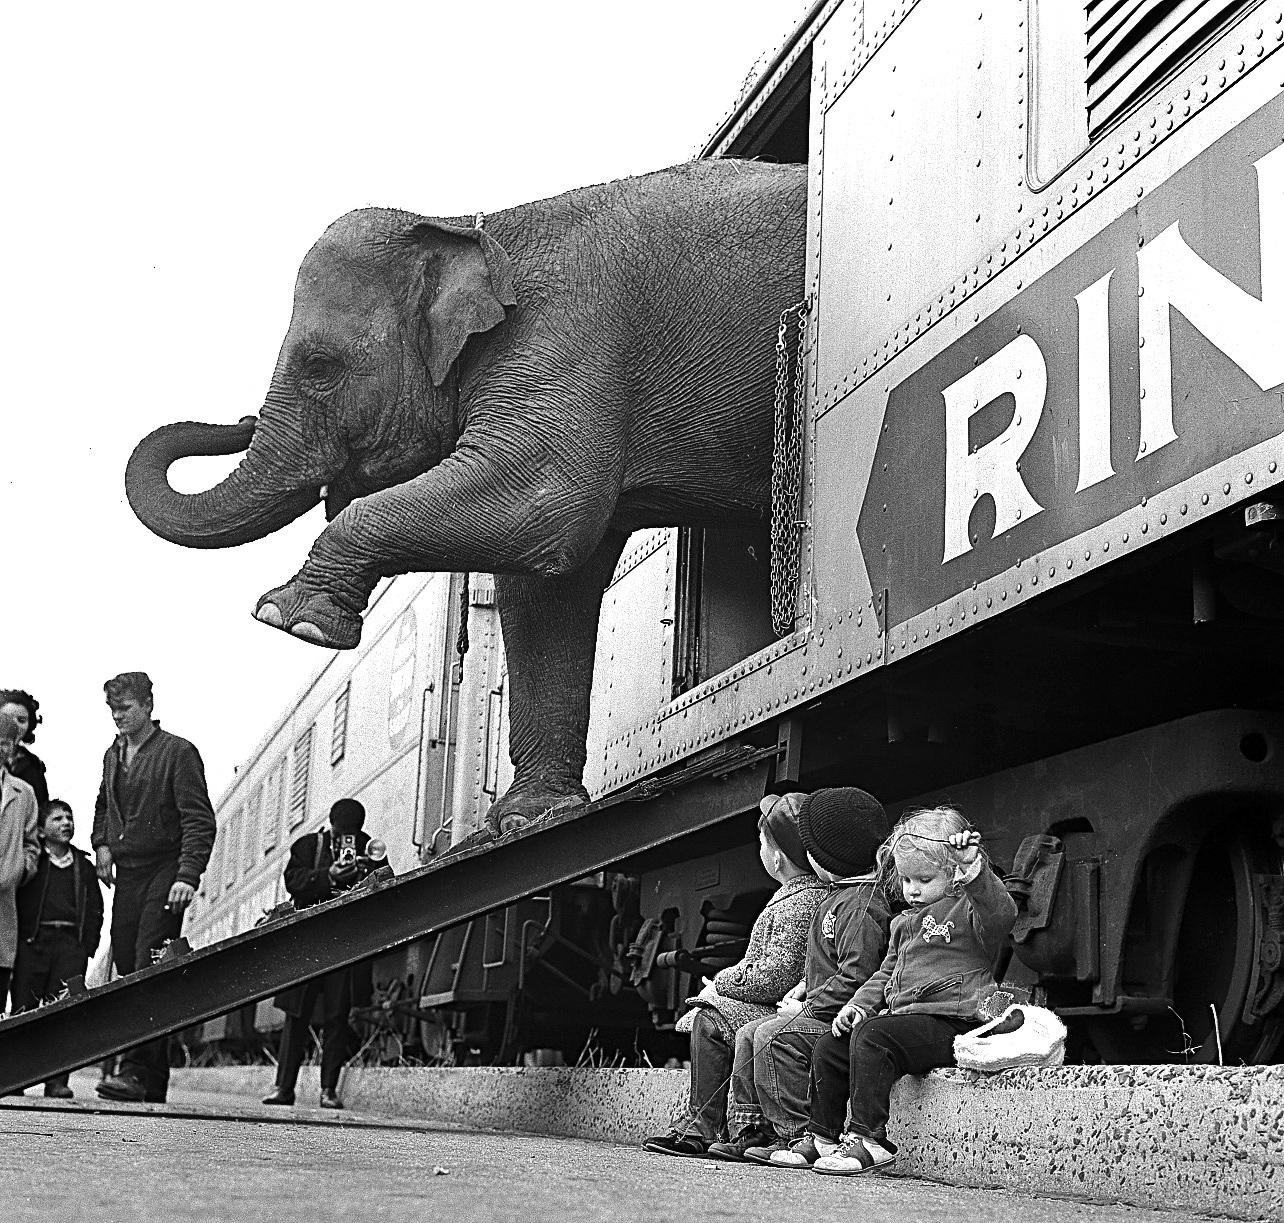 FILE - In this April 1, 1963 file photo, a Ringling Bros. Circus elephant walks out of a train car as young children watch in the Bronx railroad yard in New York. The Ringling Bros. and Barnum & Bailey Circus is drawing to a close in May 2017, after 146 years of performances and travel. (AP Photo)